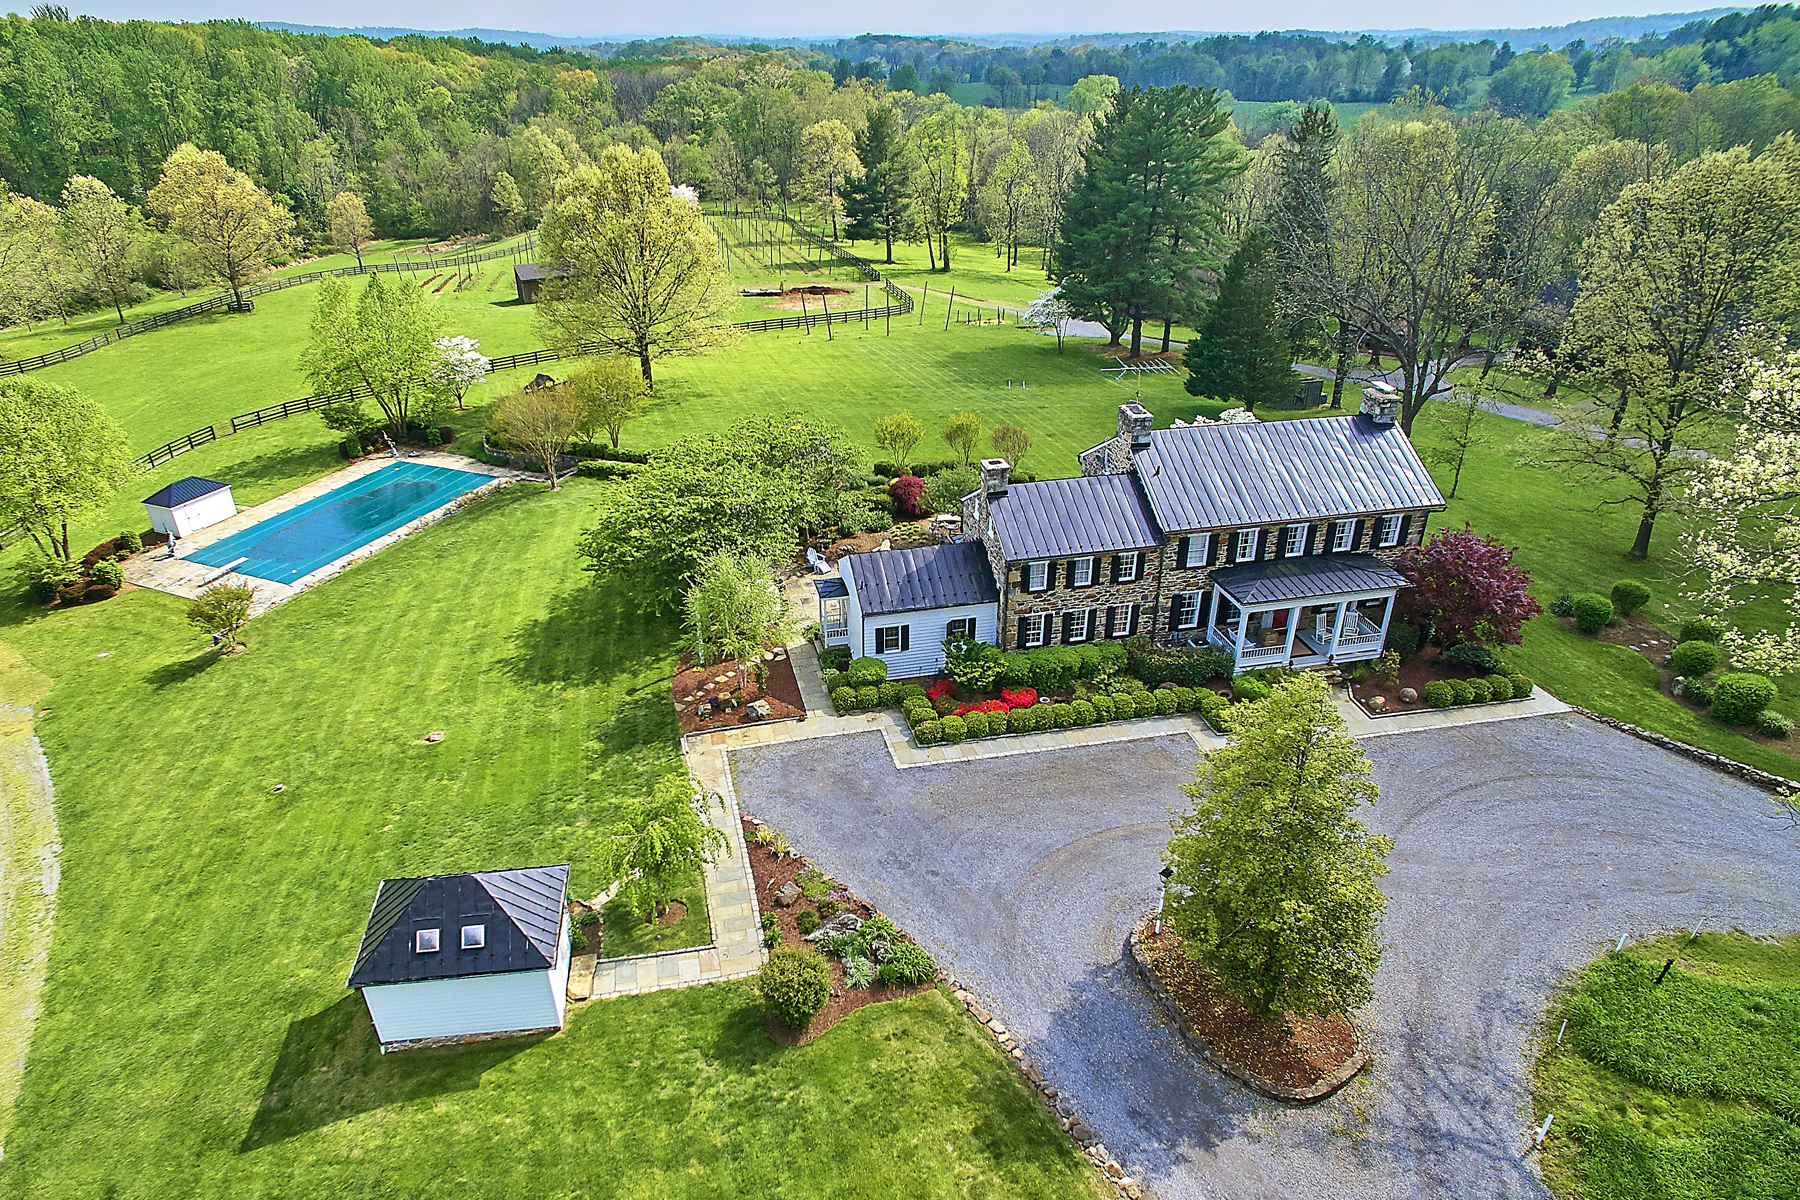 Ferme / Ranch / Plantation pour l Vente à Rockwood Manor 231 Saint Paul Street Hamilton, Virginia 20158 États-Unis